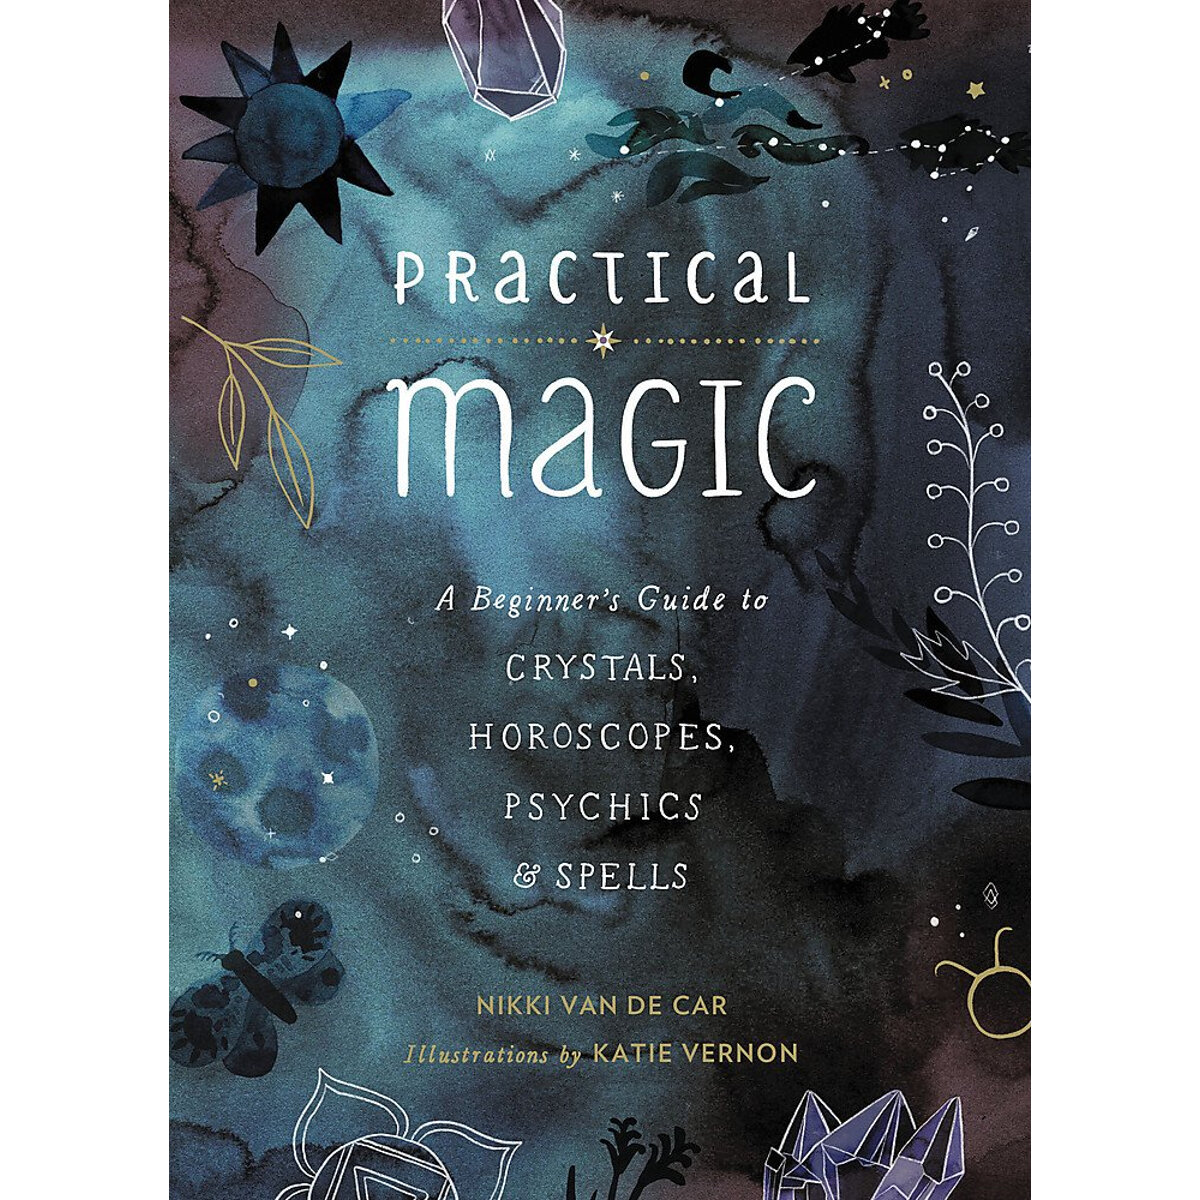 image Practical-Magic-A-Beginners-Guide-Main-image